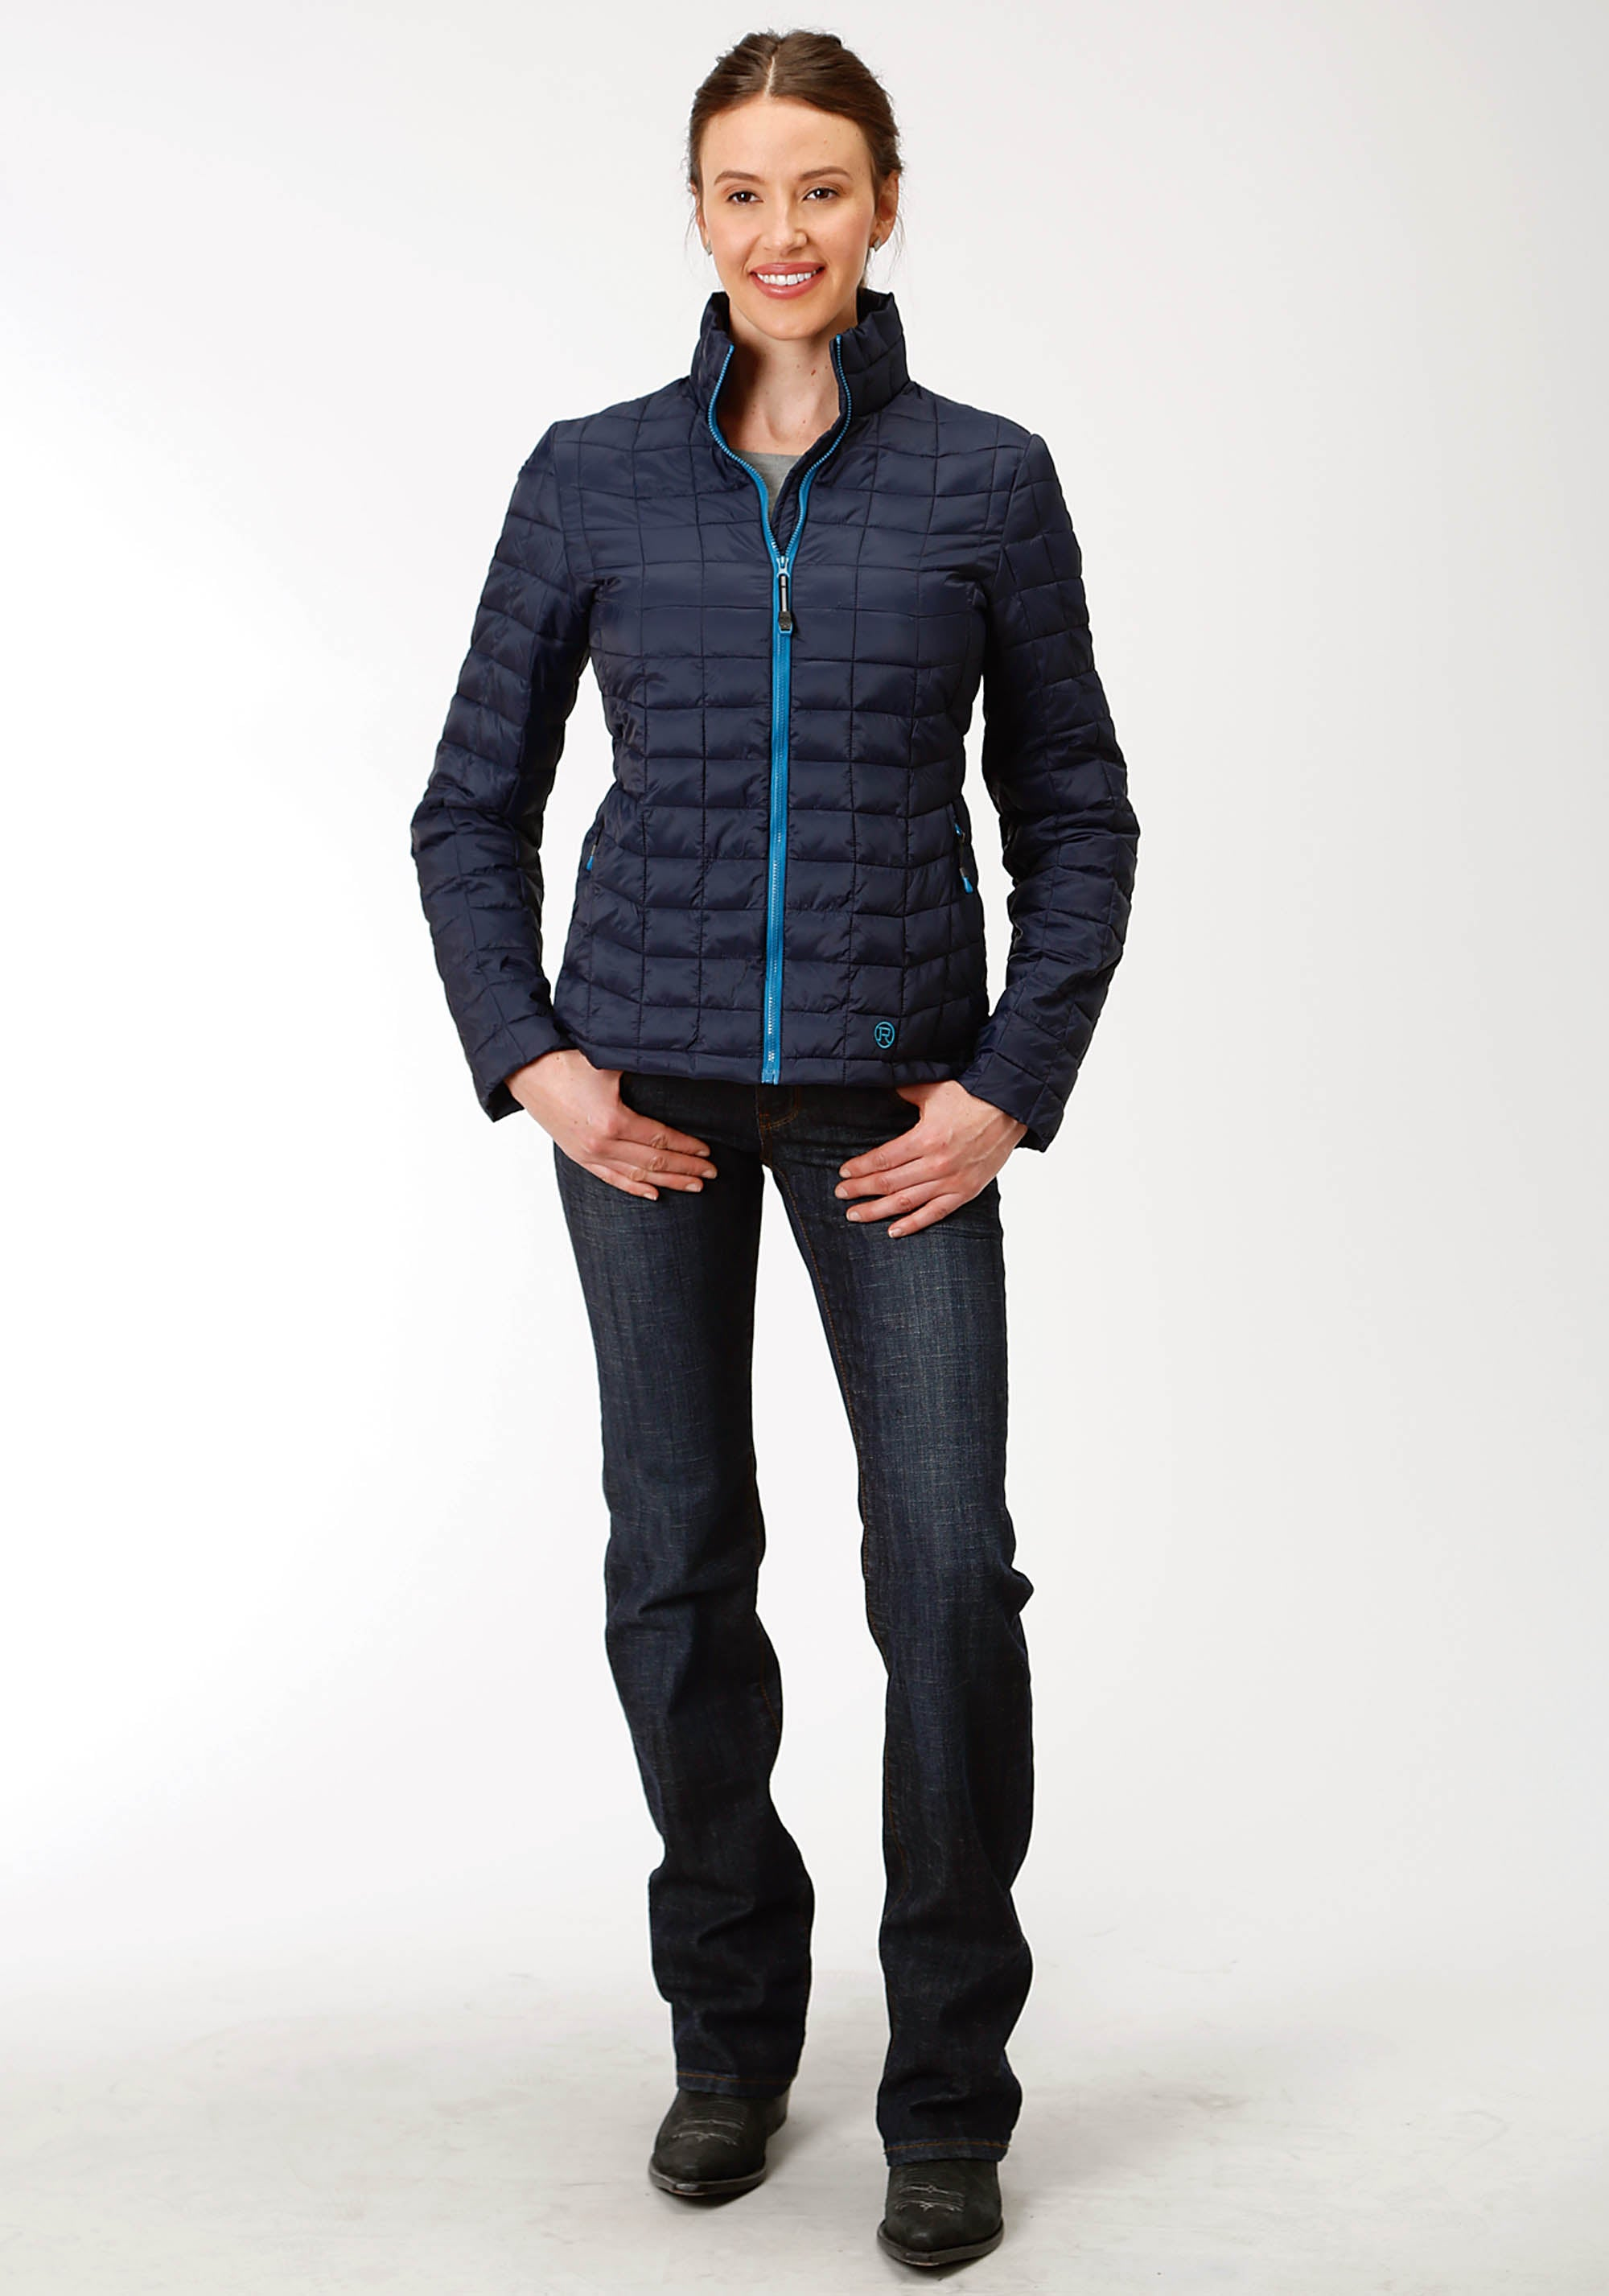 OUTERWEAR WOMENS NAVY 4043 POLY FILLED NYLON JACKET CRUSHABLE